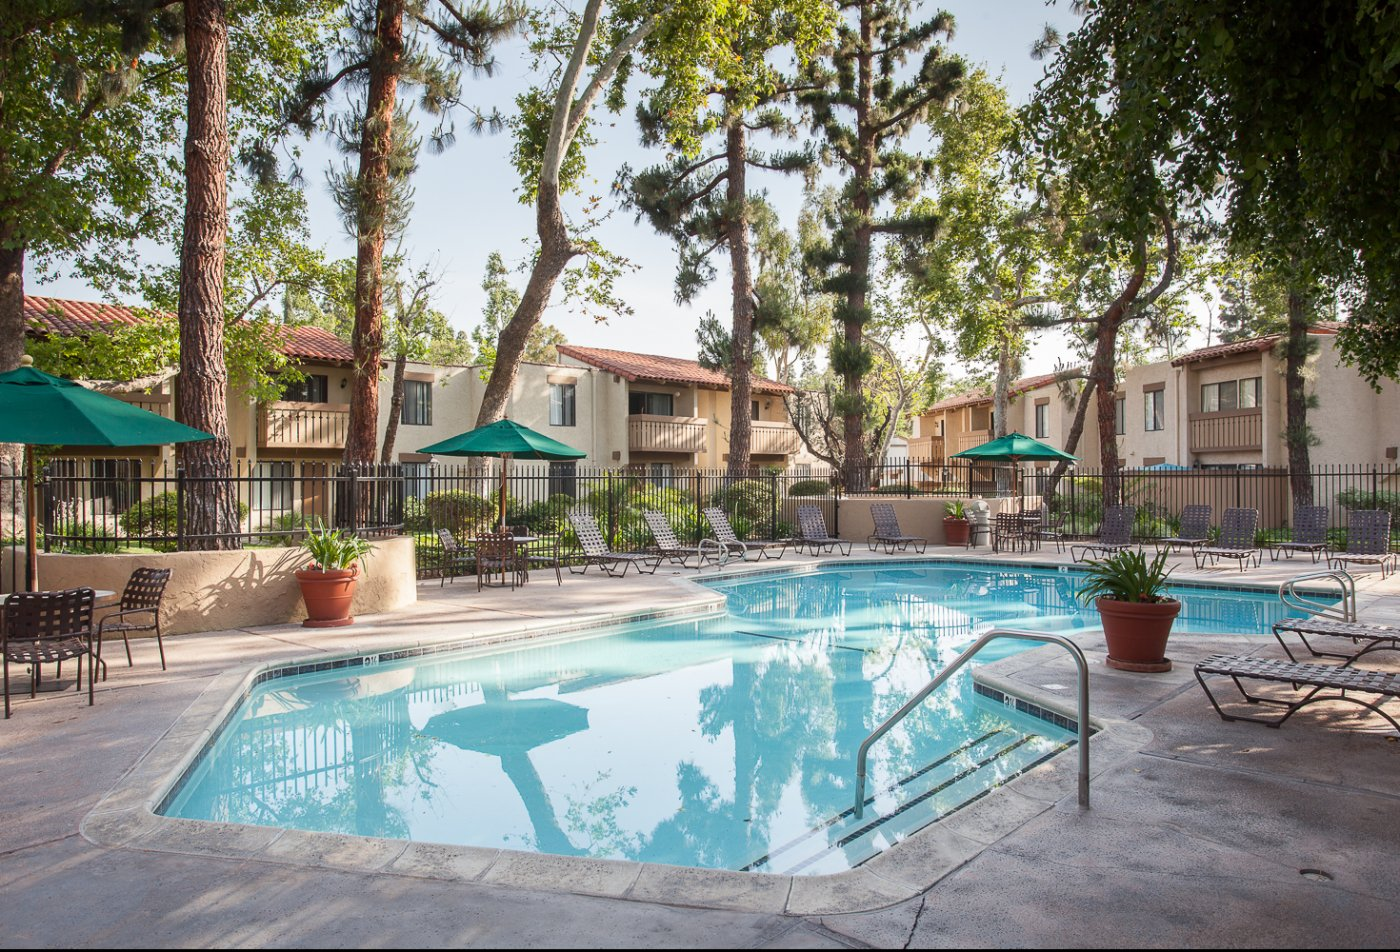 Apartments for Rent in Fullerton, CA | Homestead